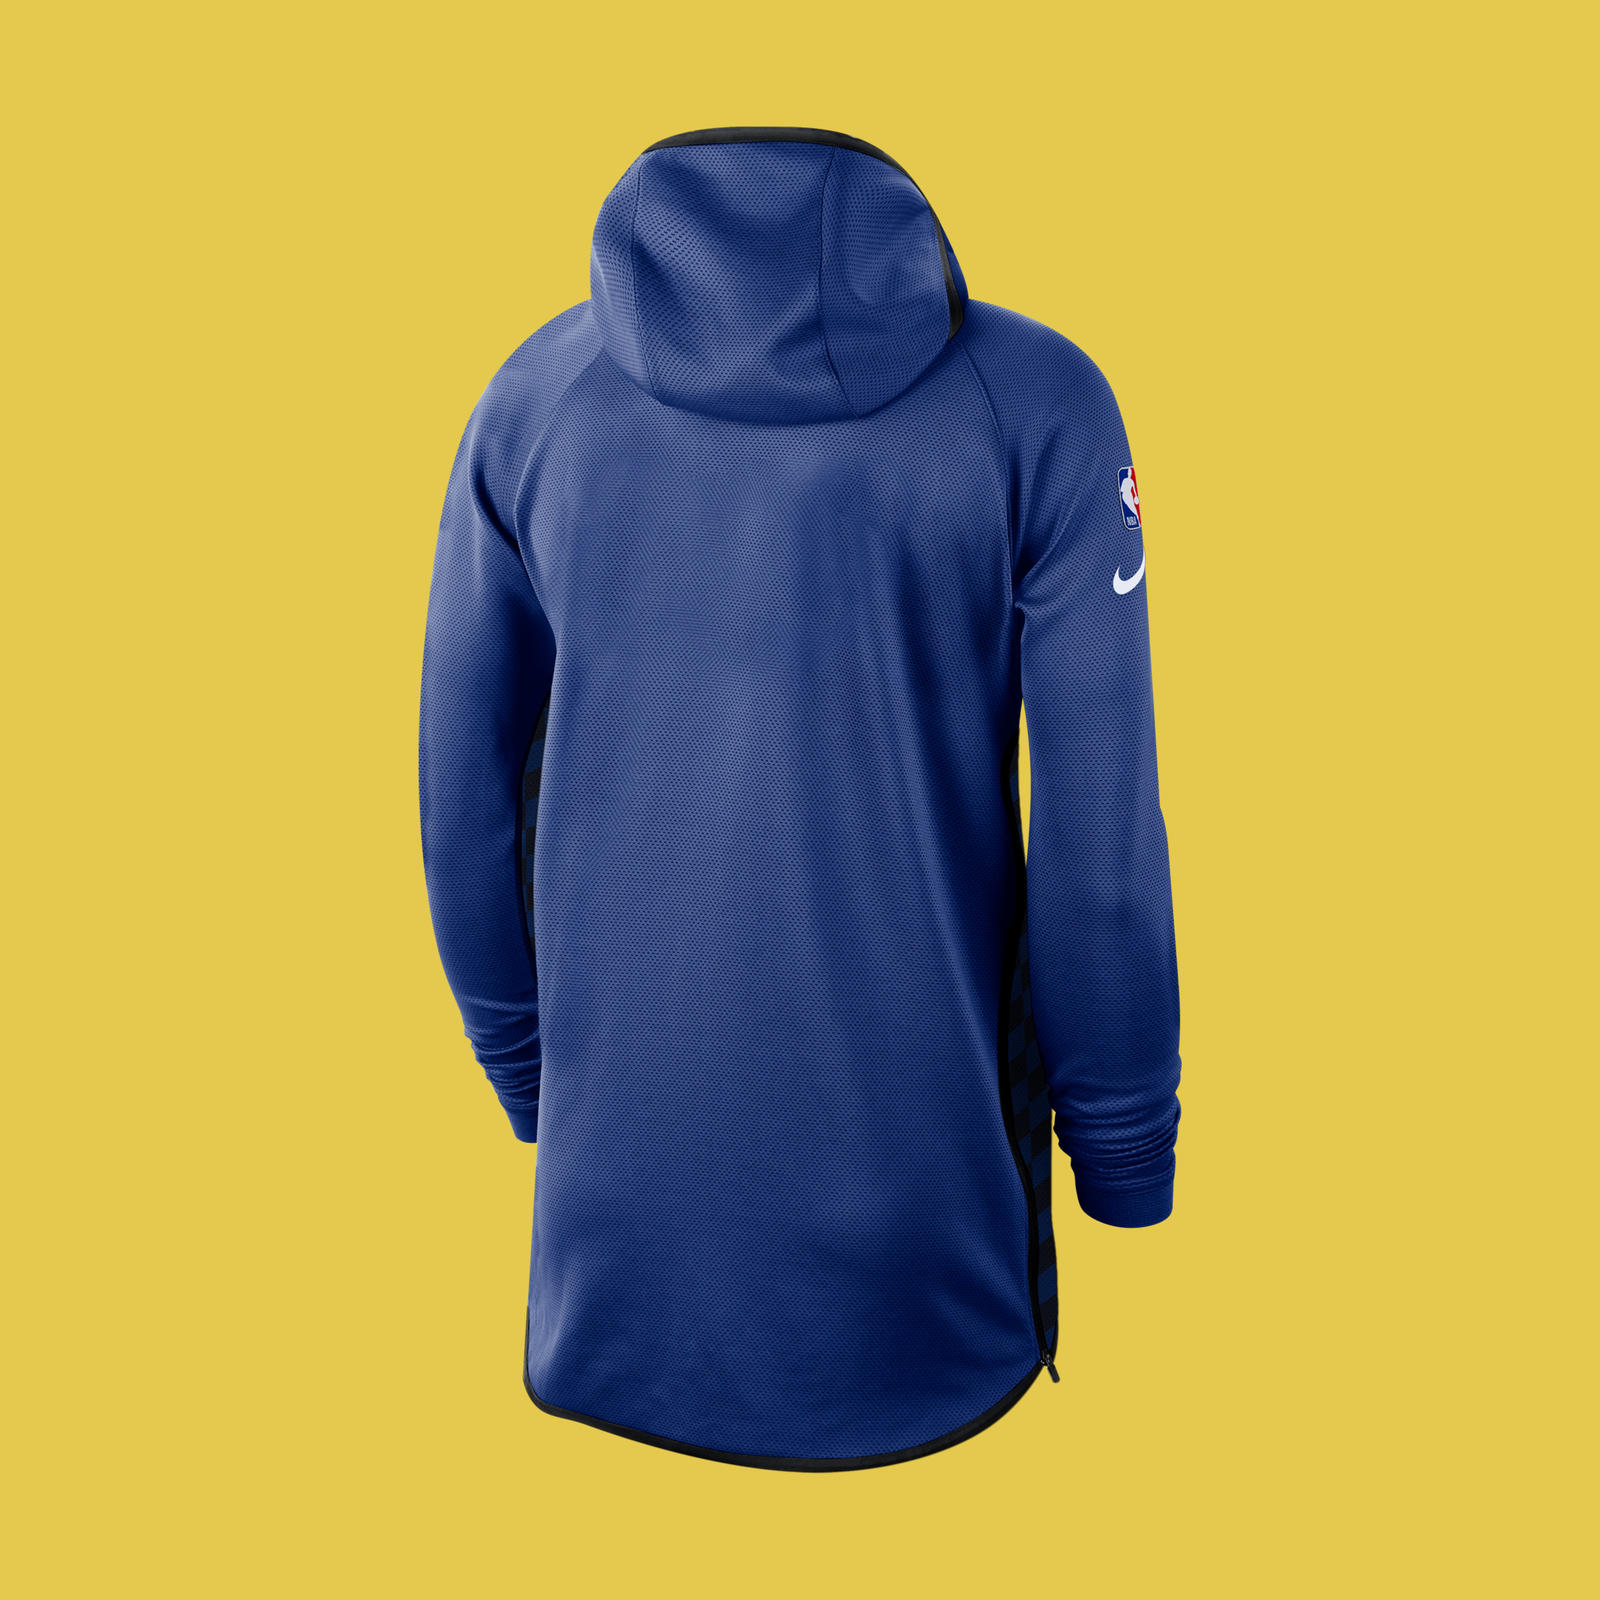 Nike NBA Earned Edition Showtime Hoodies 2019-20 Official Images 17